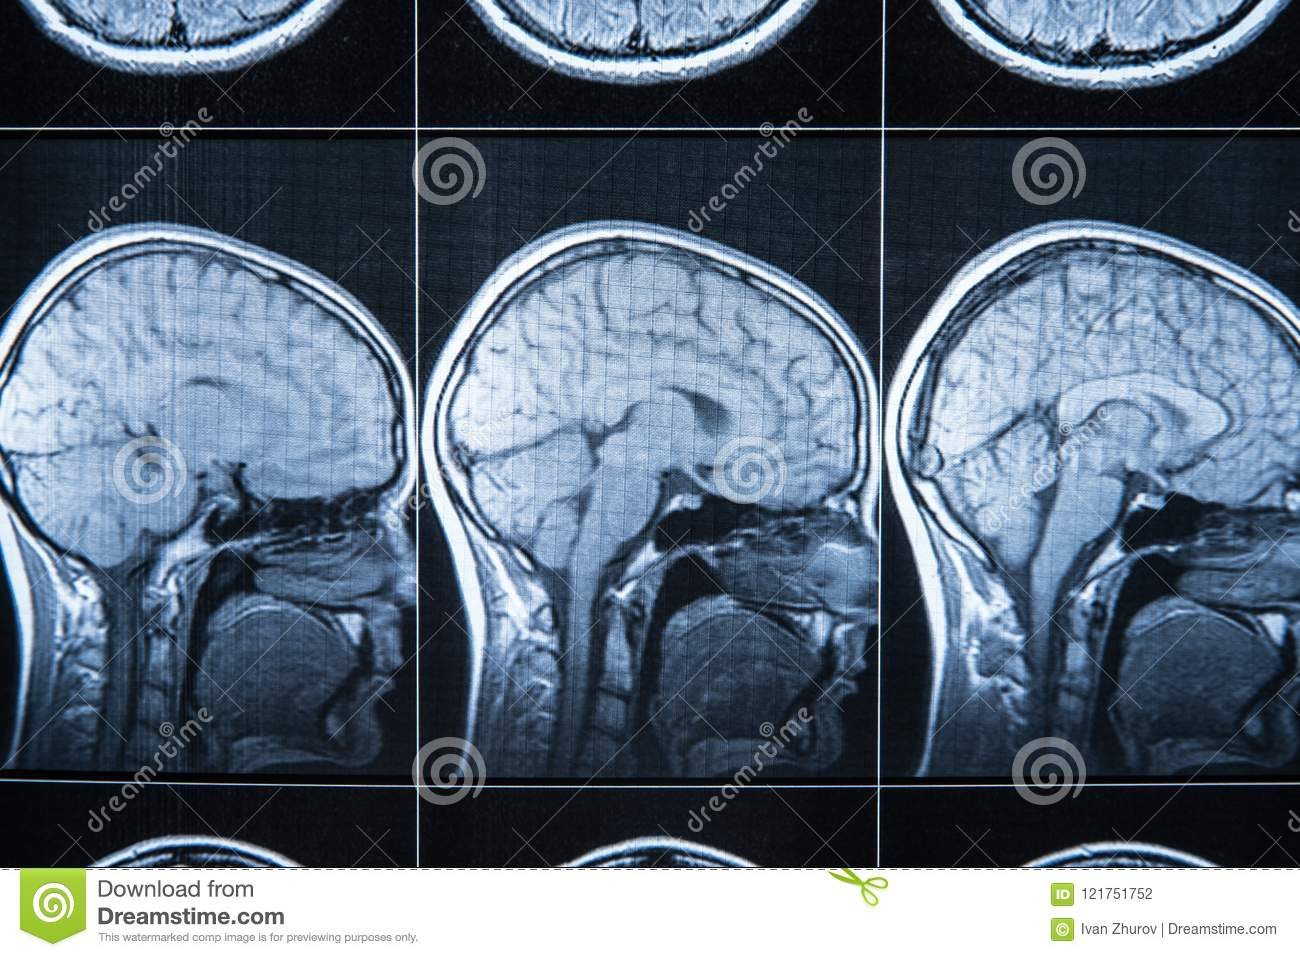 X-ray of the head and brain, MRI